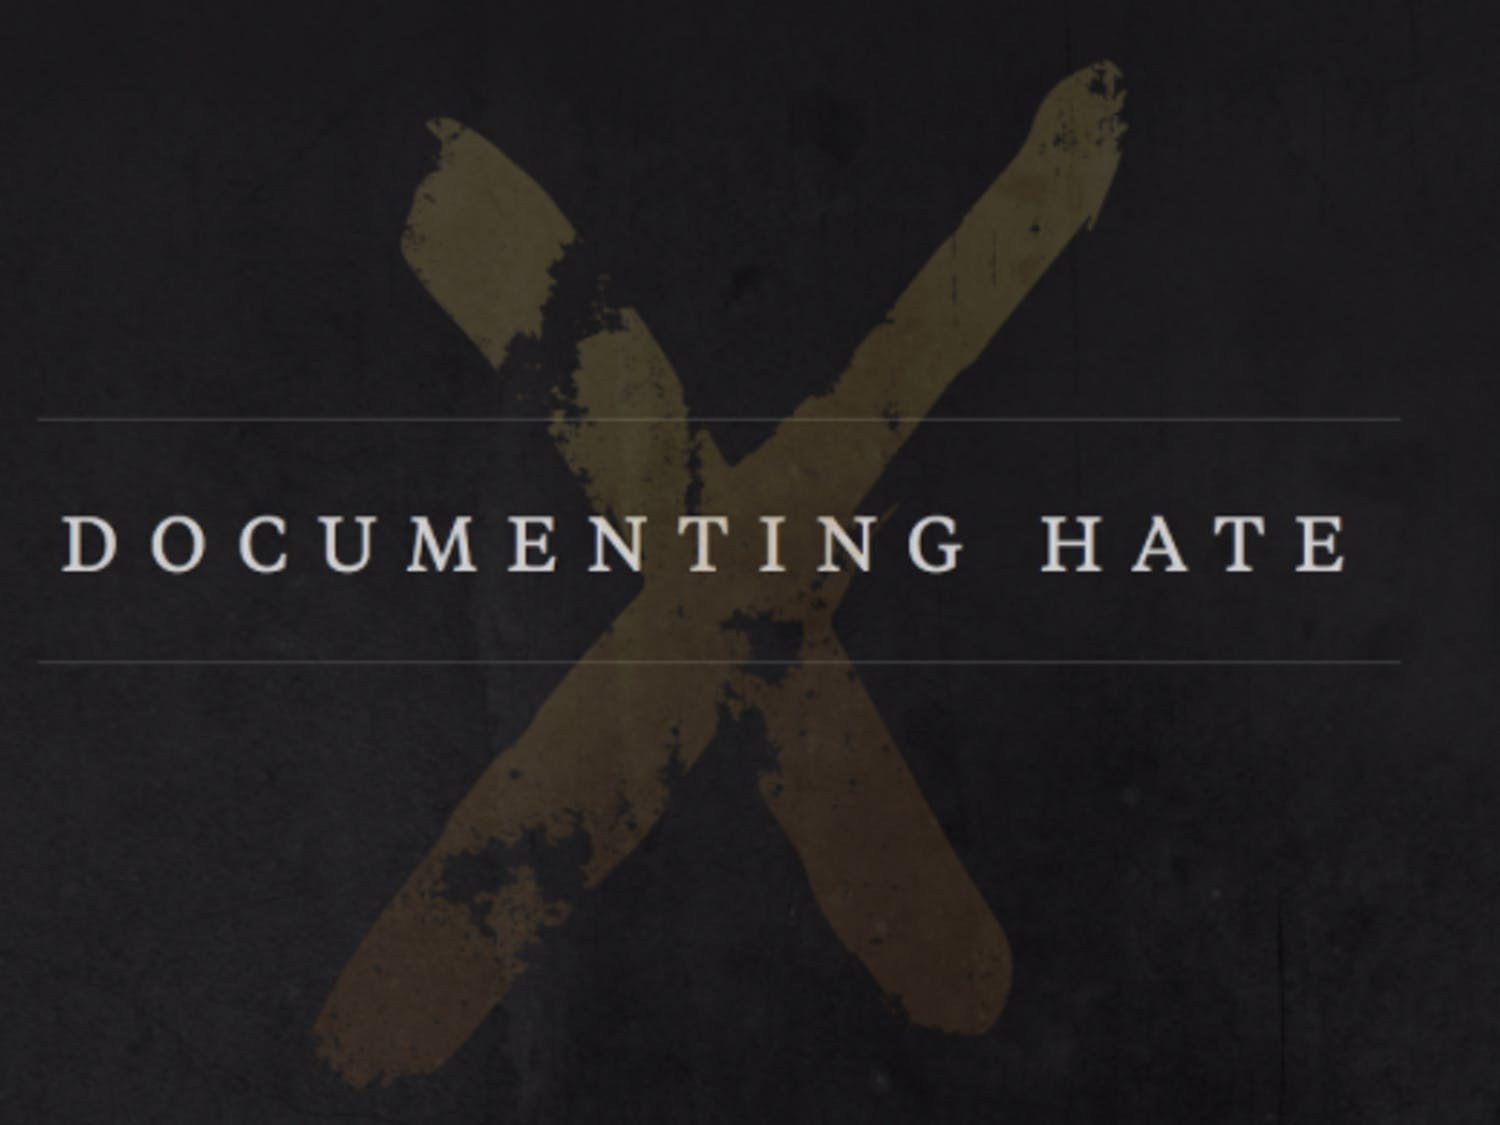 The Daily Cardinal is partnering with ProPublica's Documenting Hate project to track hate and bias incidents on UW-Madison's campus.